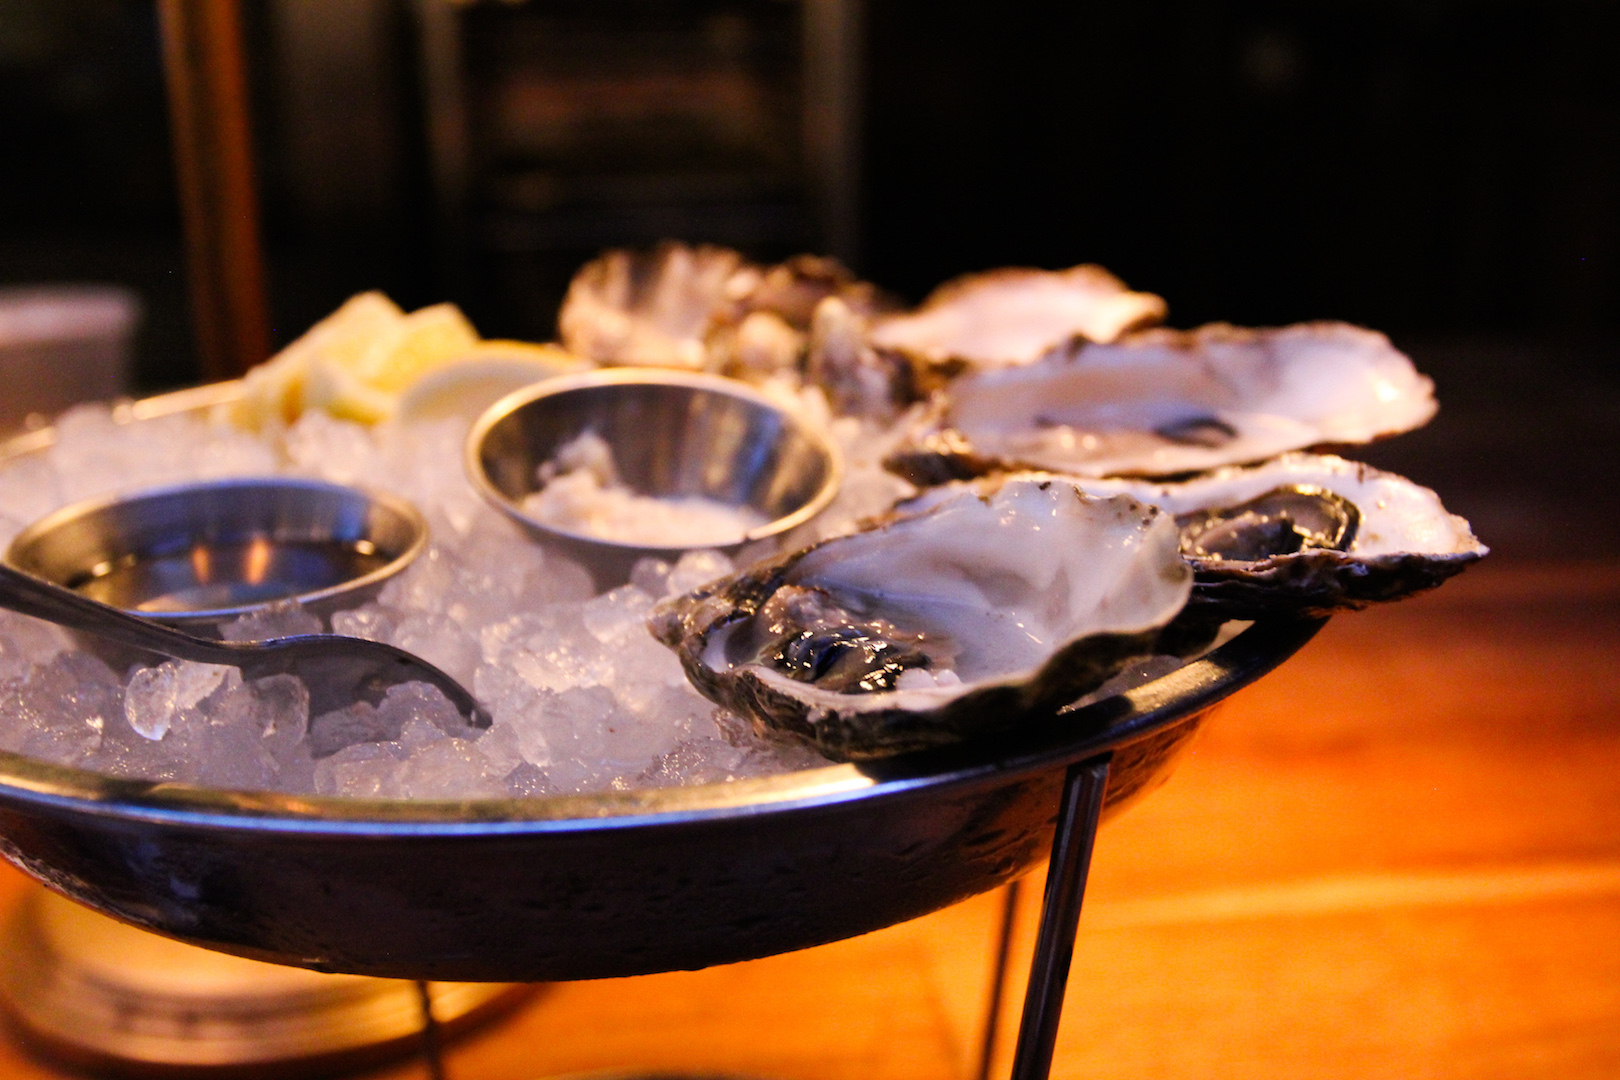 Oysters at Ironside Fish & Oyster in Little Italy, San Diego, CA